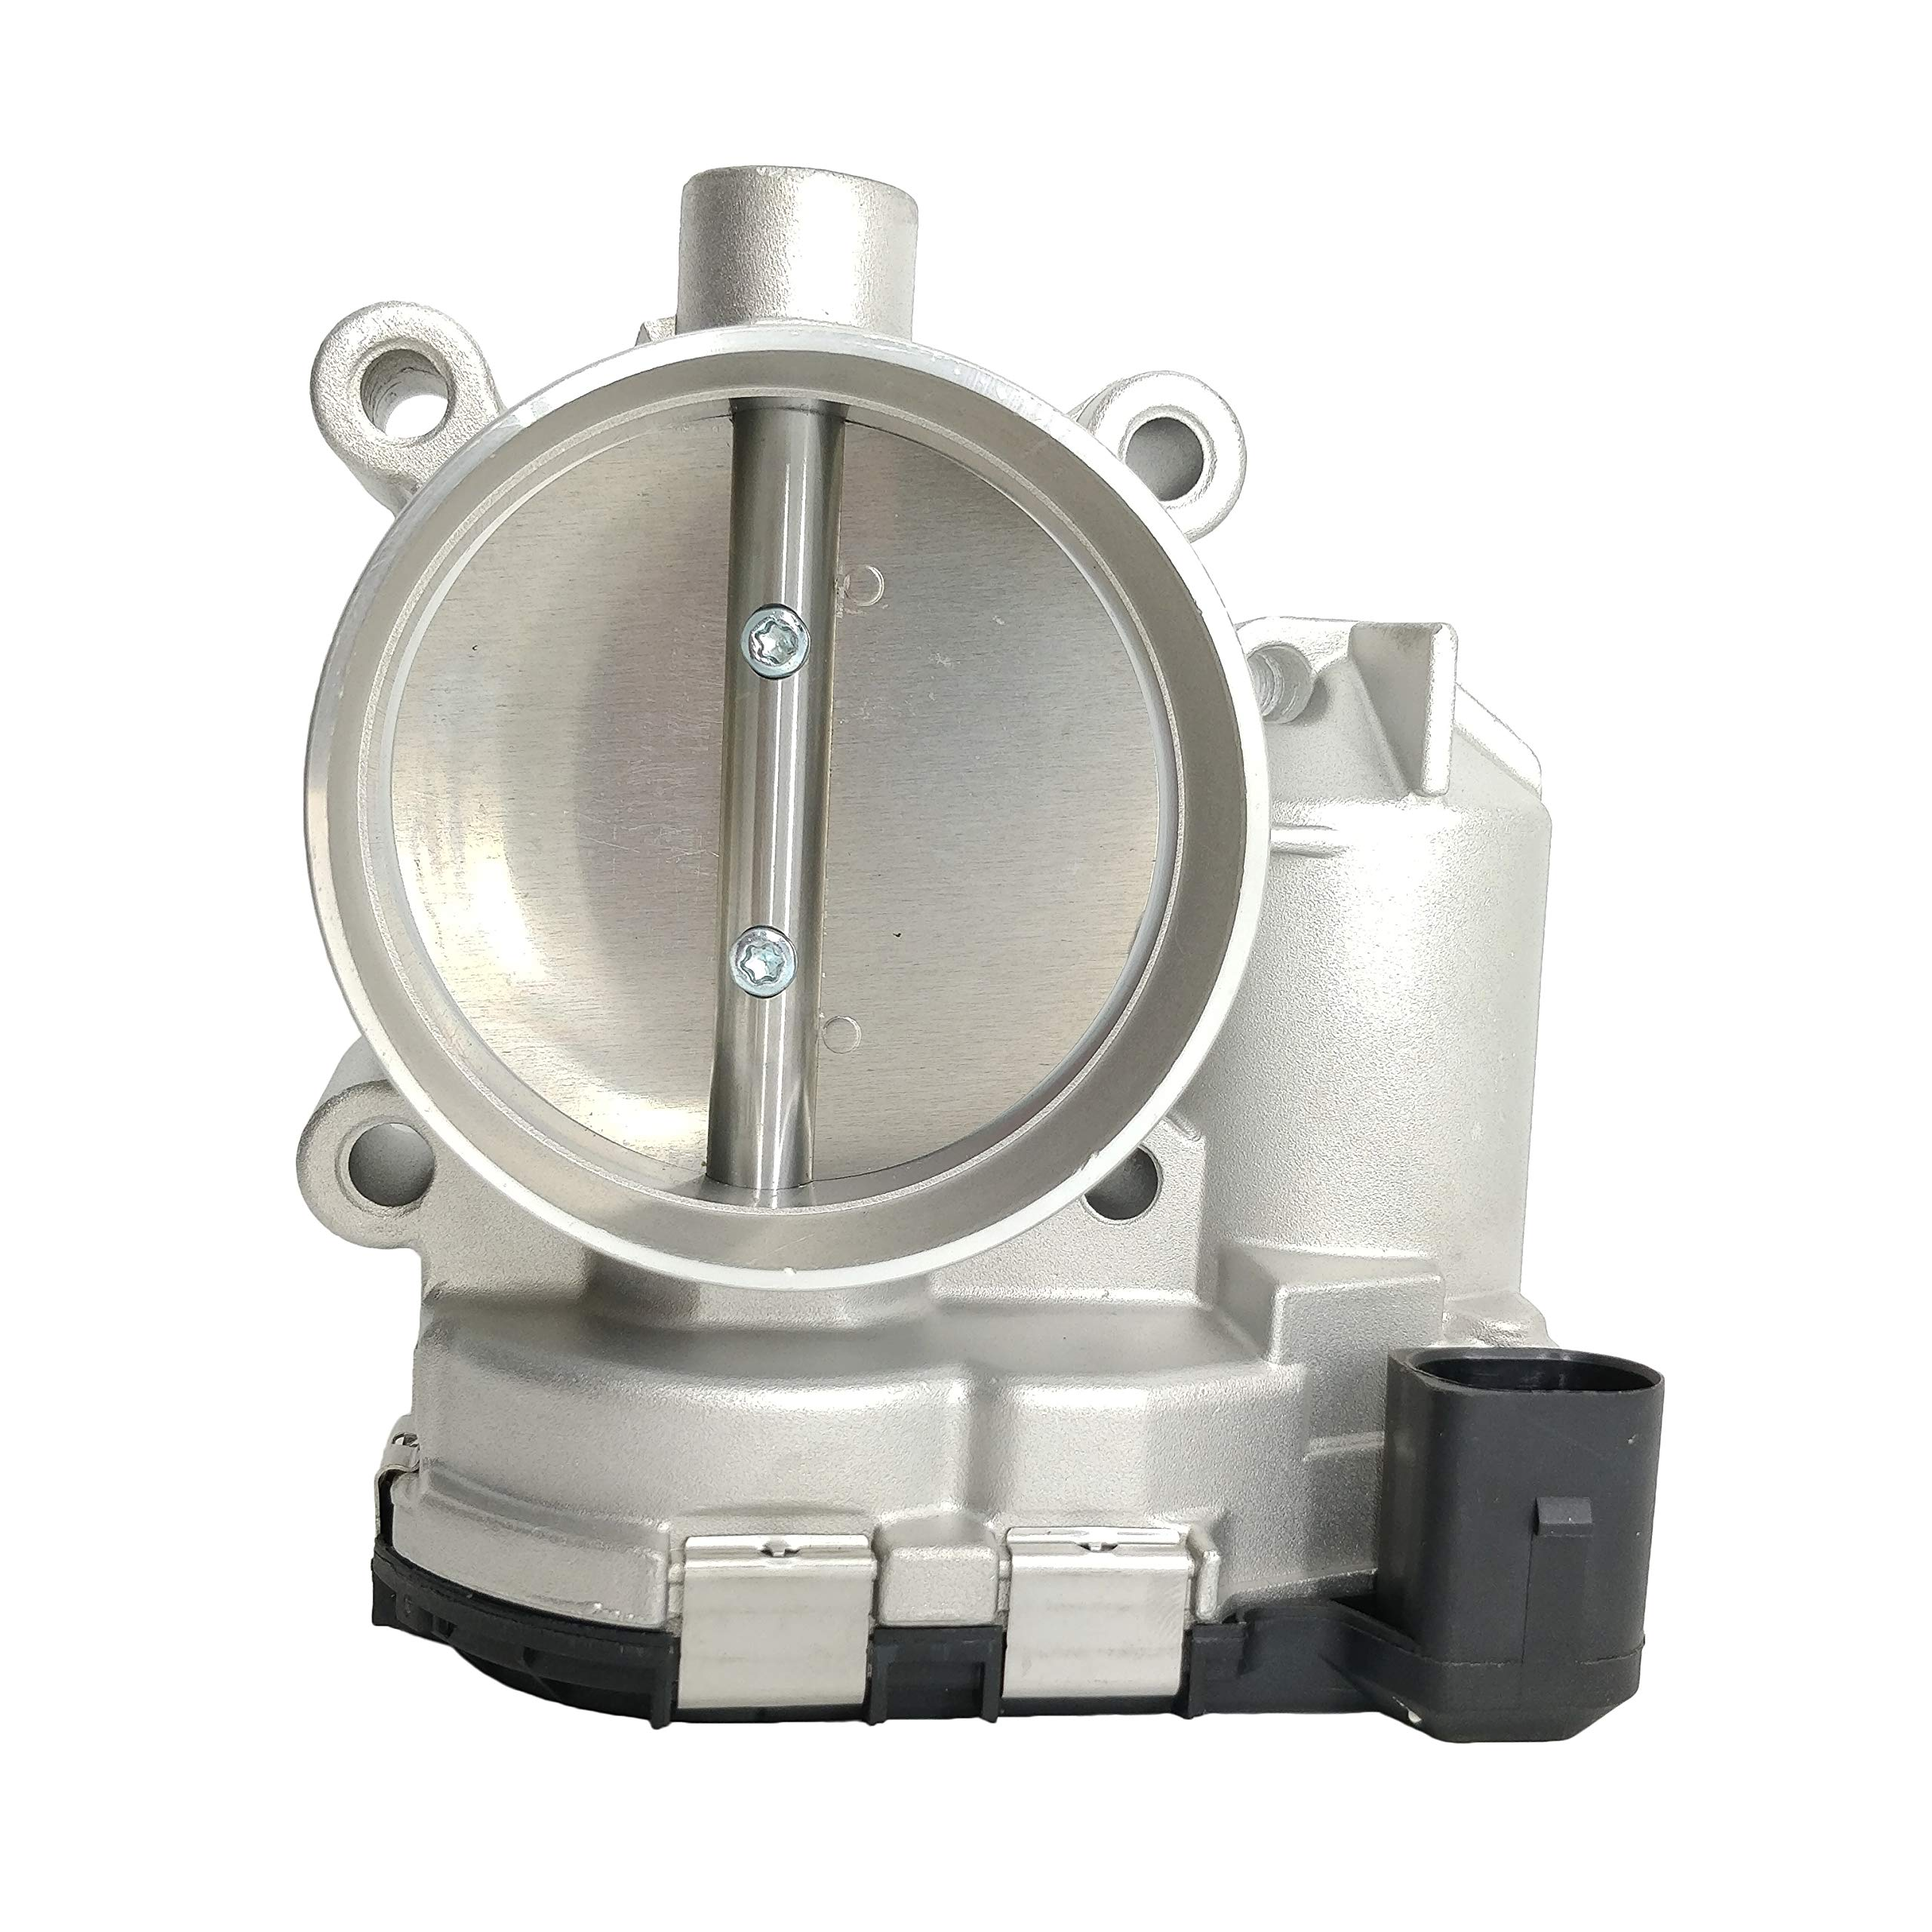 OKAY MOTOR Throttle Body for Audi A4 A6 Allroad Quattro S4 S6 S8 R8 2.7 3.2 4.2L by OKAY MOTOR